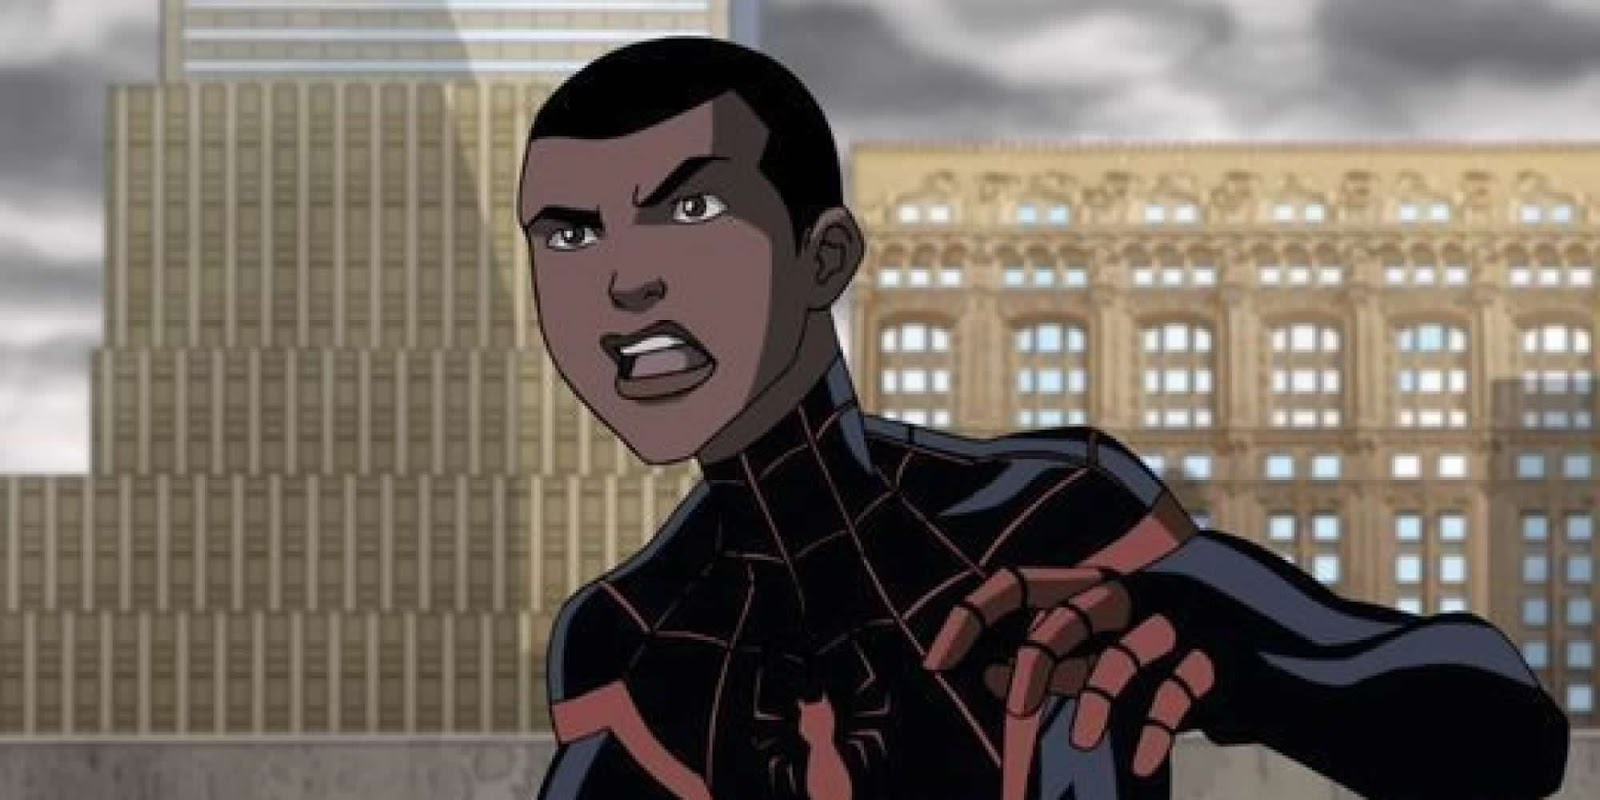 MILES MORALES CONFIRMED AS LEAD SUPER HERO IN UPCOMING SPIDER MAN FILM